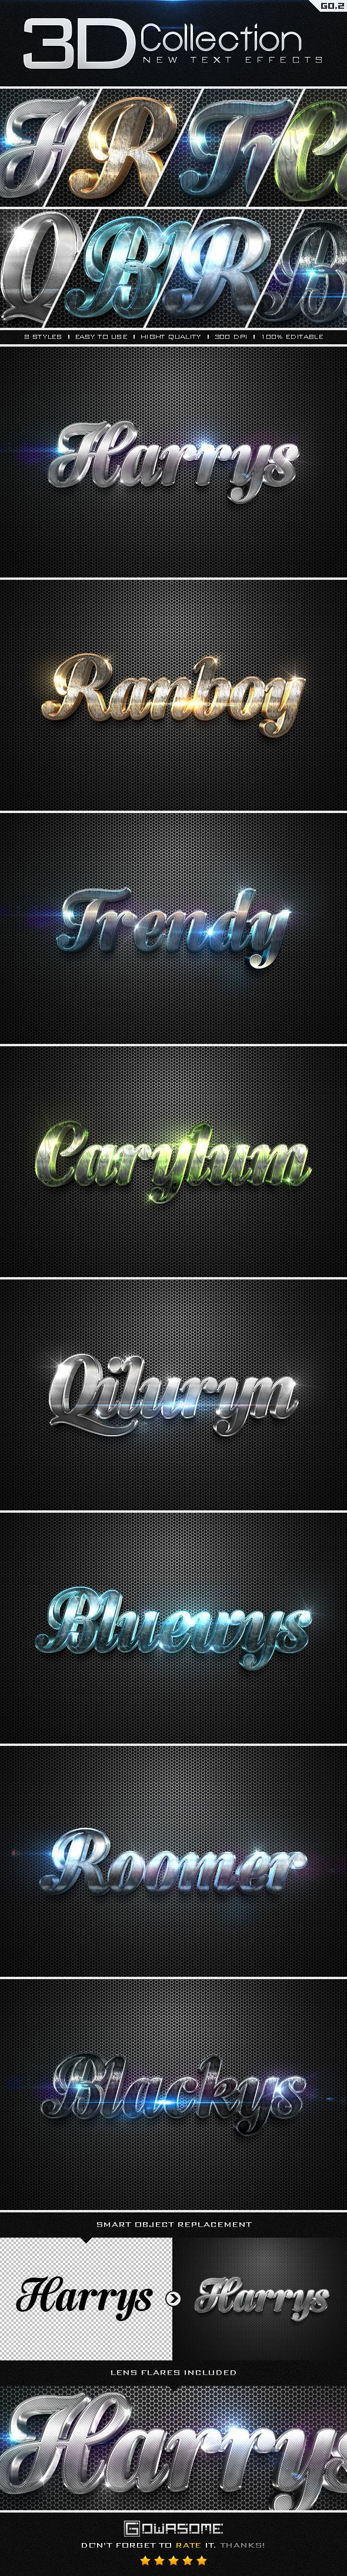 New 3D Collection Text Effects GO.2. Download here: http://graphicriver.net/item/new-3d-collection-text-effects-go2/9609990?ref=ksioks